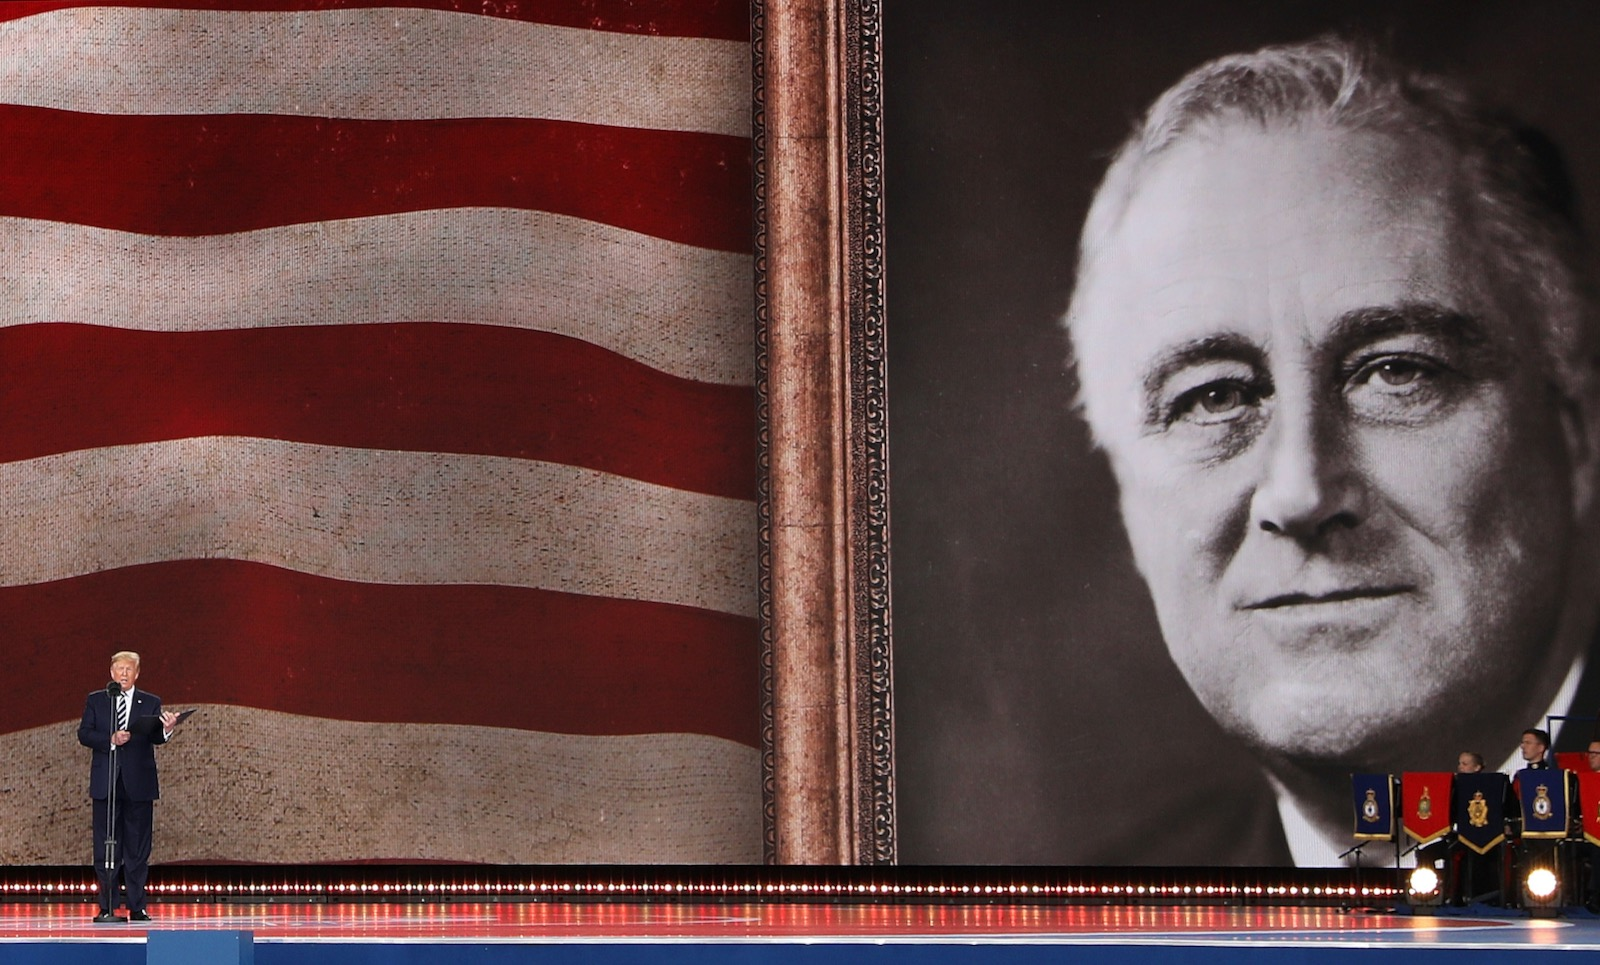 'The Most Ignorant and Unfit': What Made America's Worst Ever Leader?